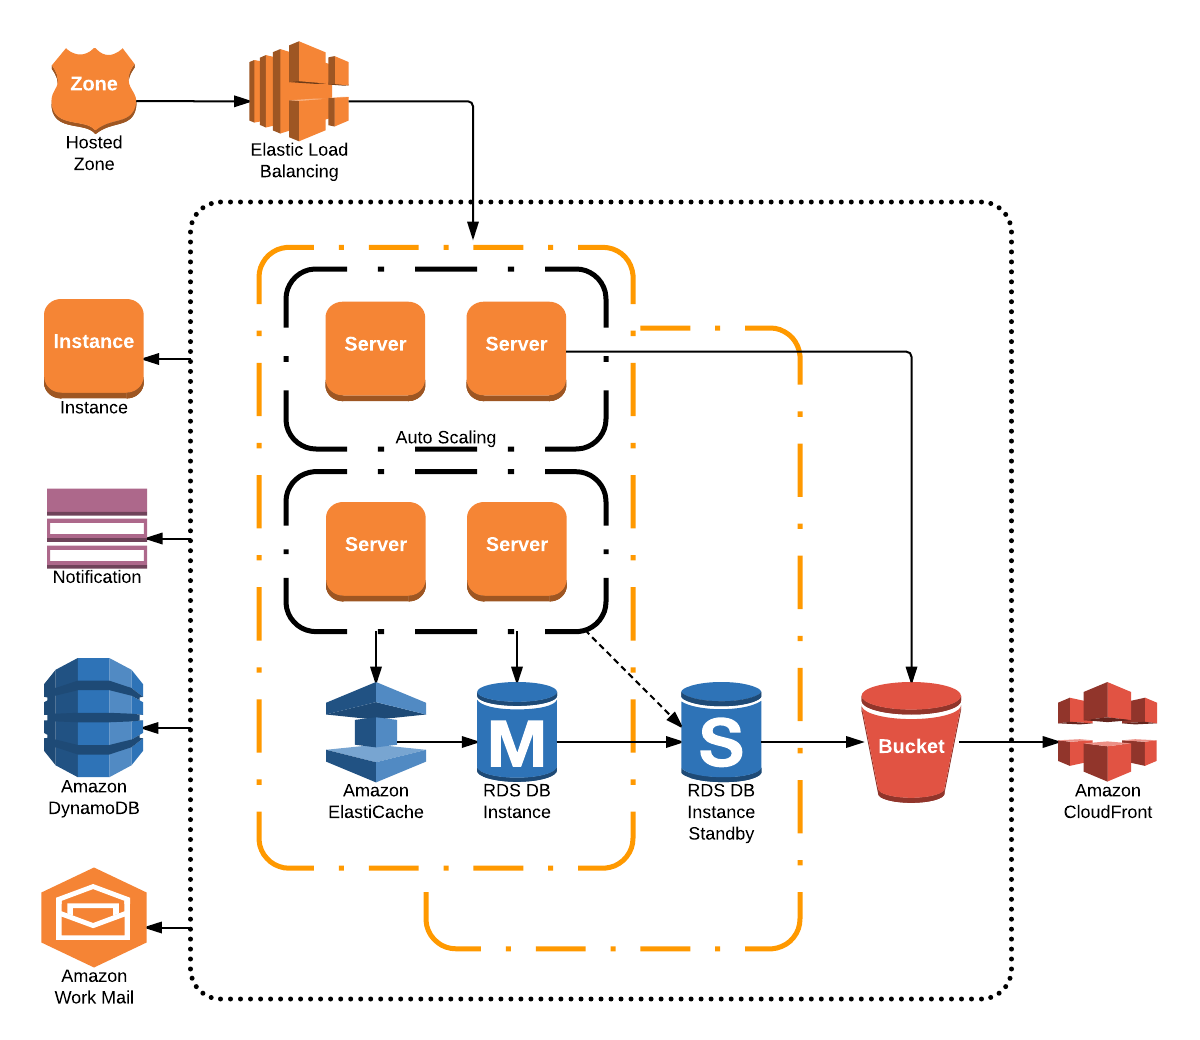 microsoft infrastructure diagram alternator exciter wiring a free aws template for network